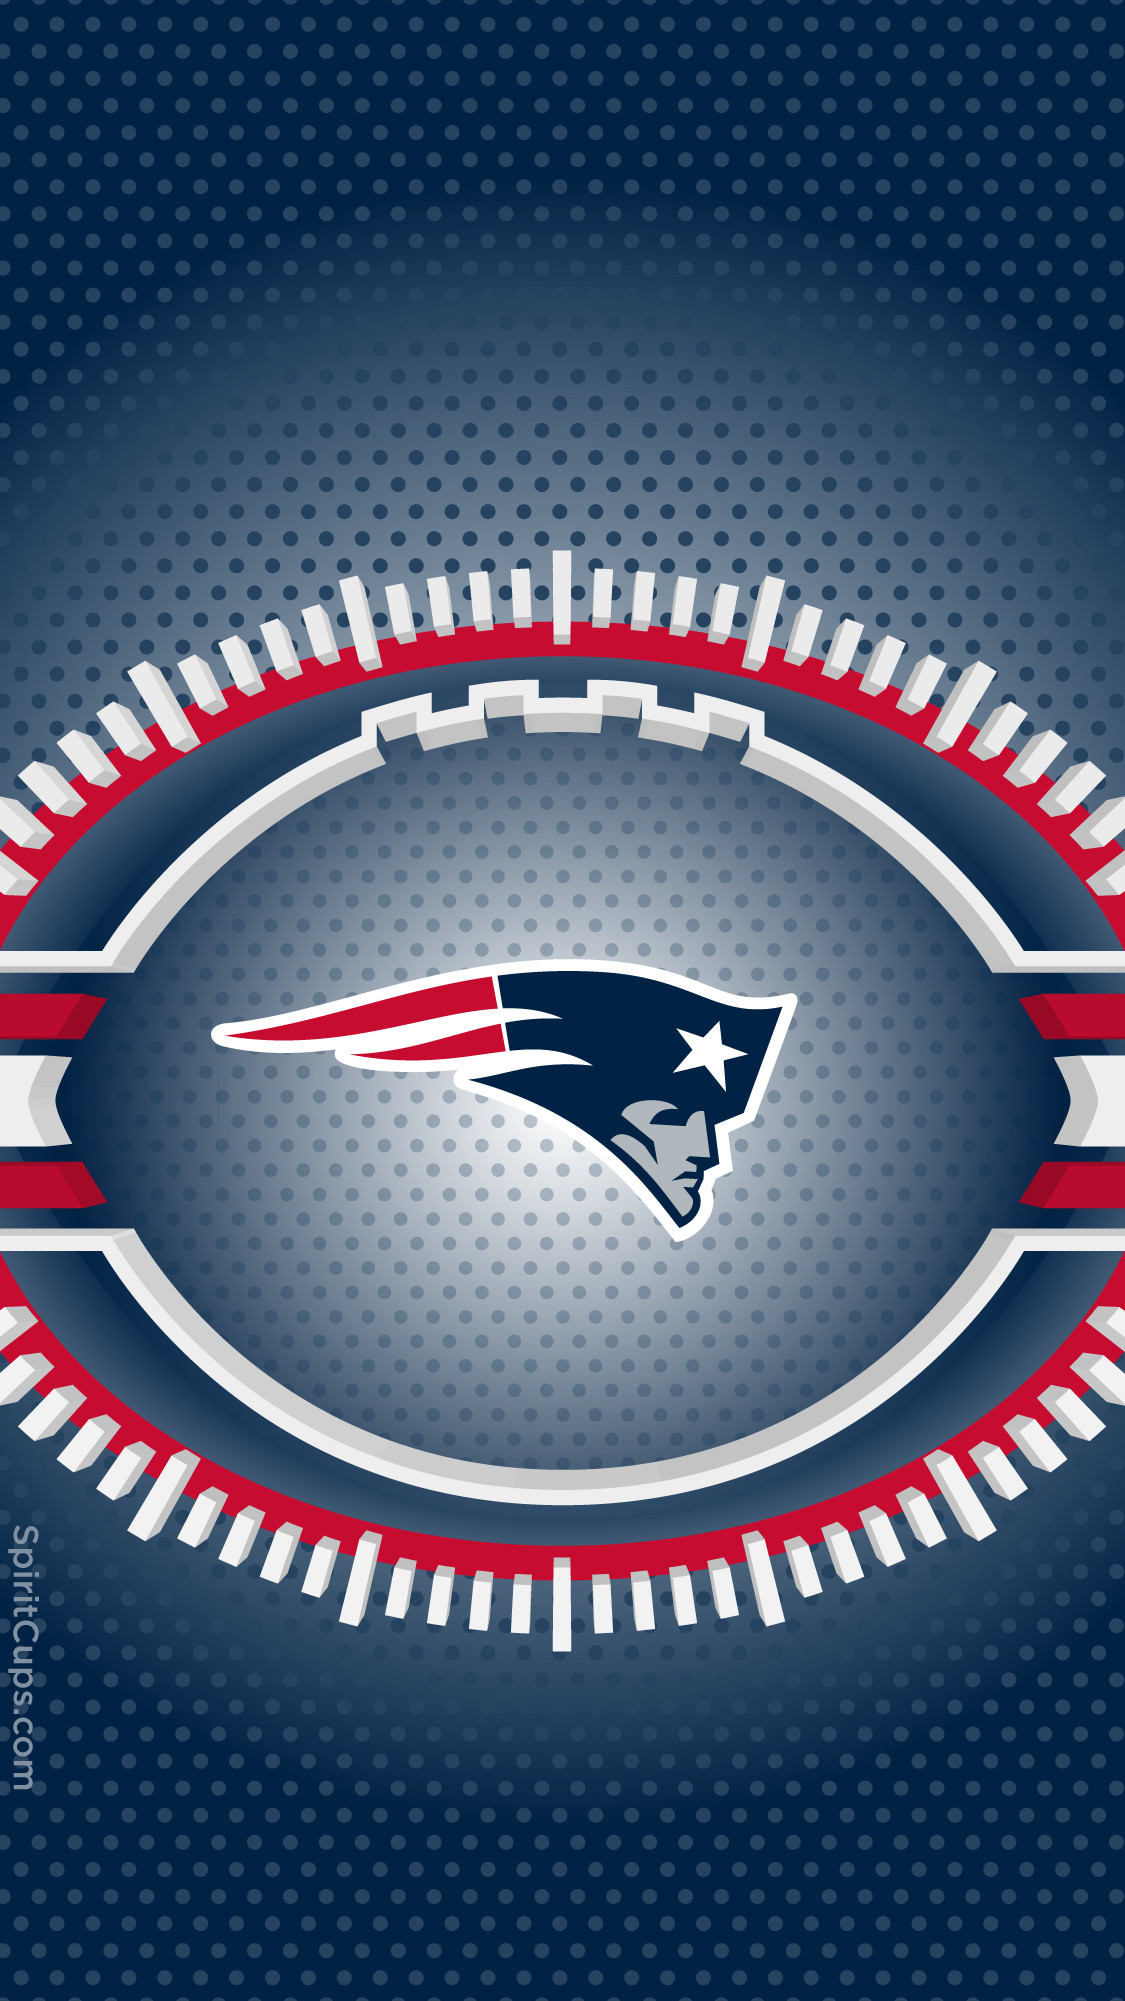 New england patriots logo wallpaper 72 images 1080x1920 new england patriots hd wallpaper pack vol ii ft tom brady brandon voltagebd Images